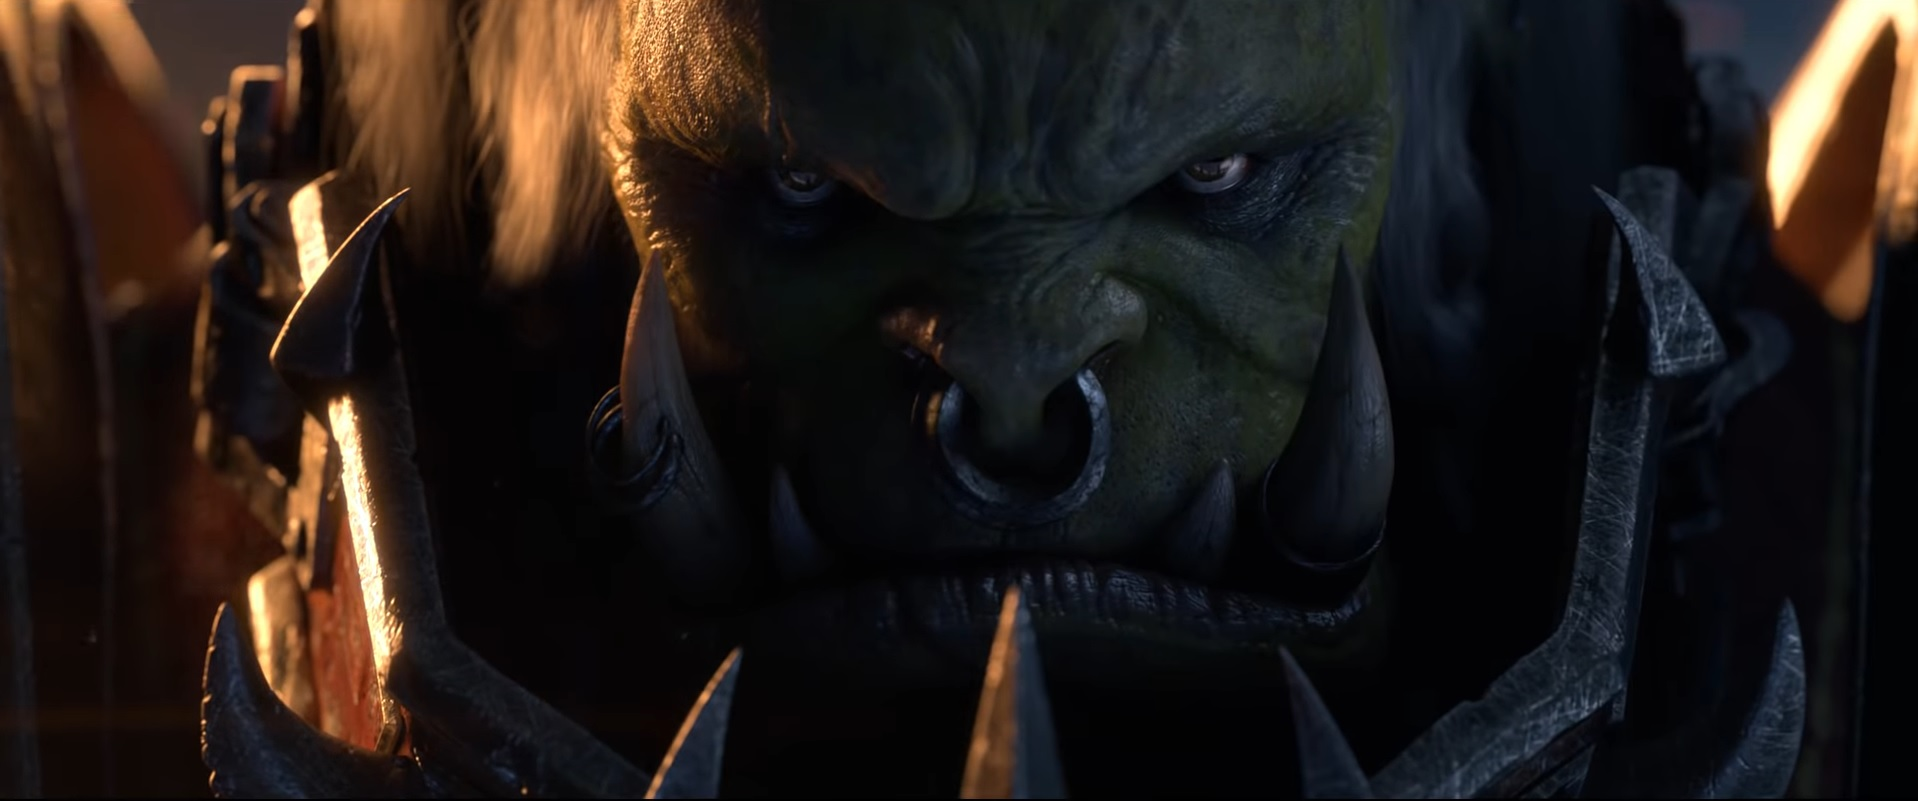 WoW Saurfang Cinematic title 1